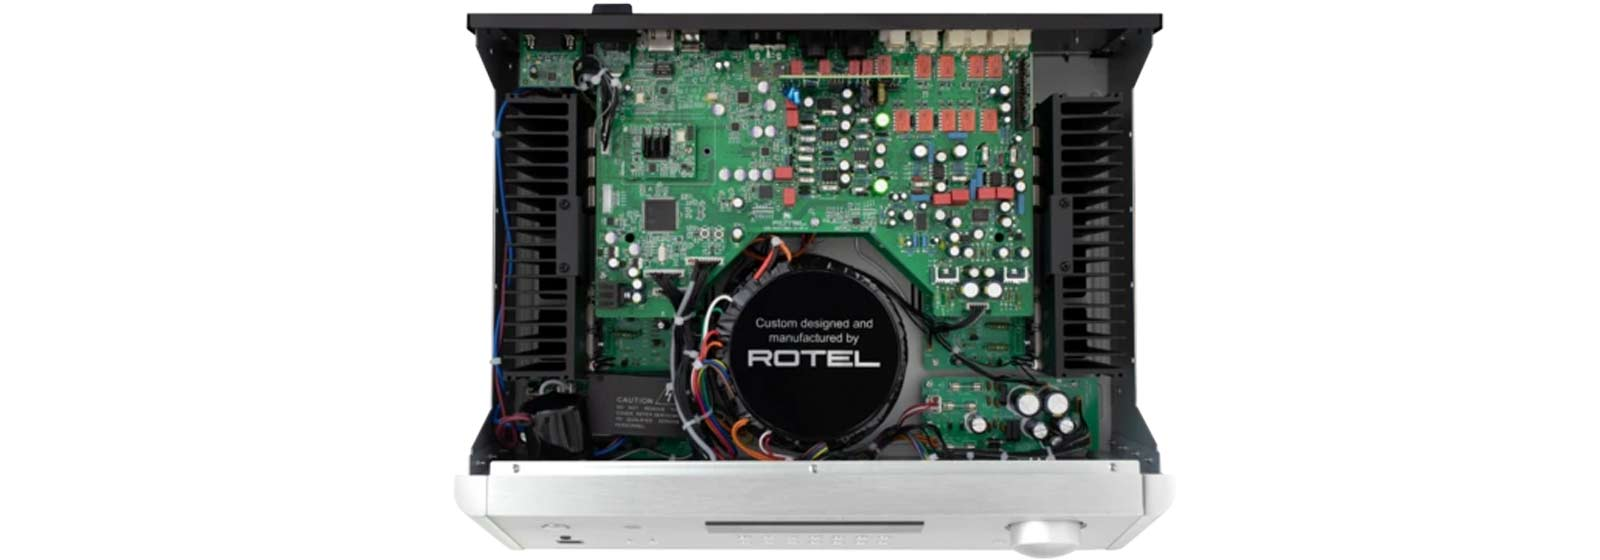 Rotel-RA-1572-MKII-INTEGRATED-AMPLIFIER